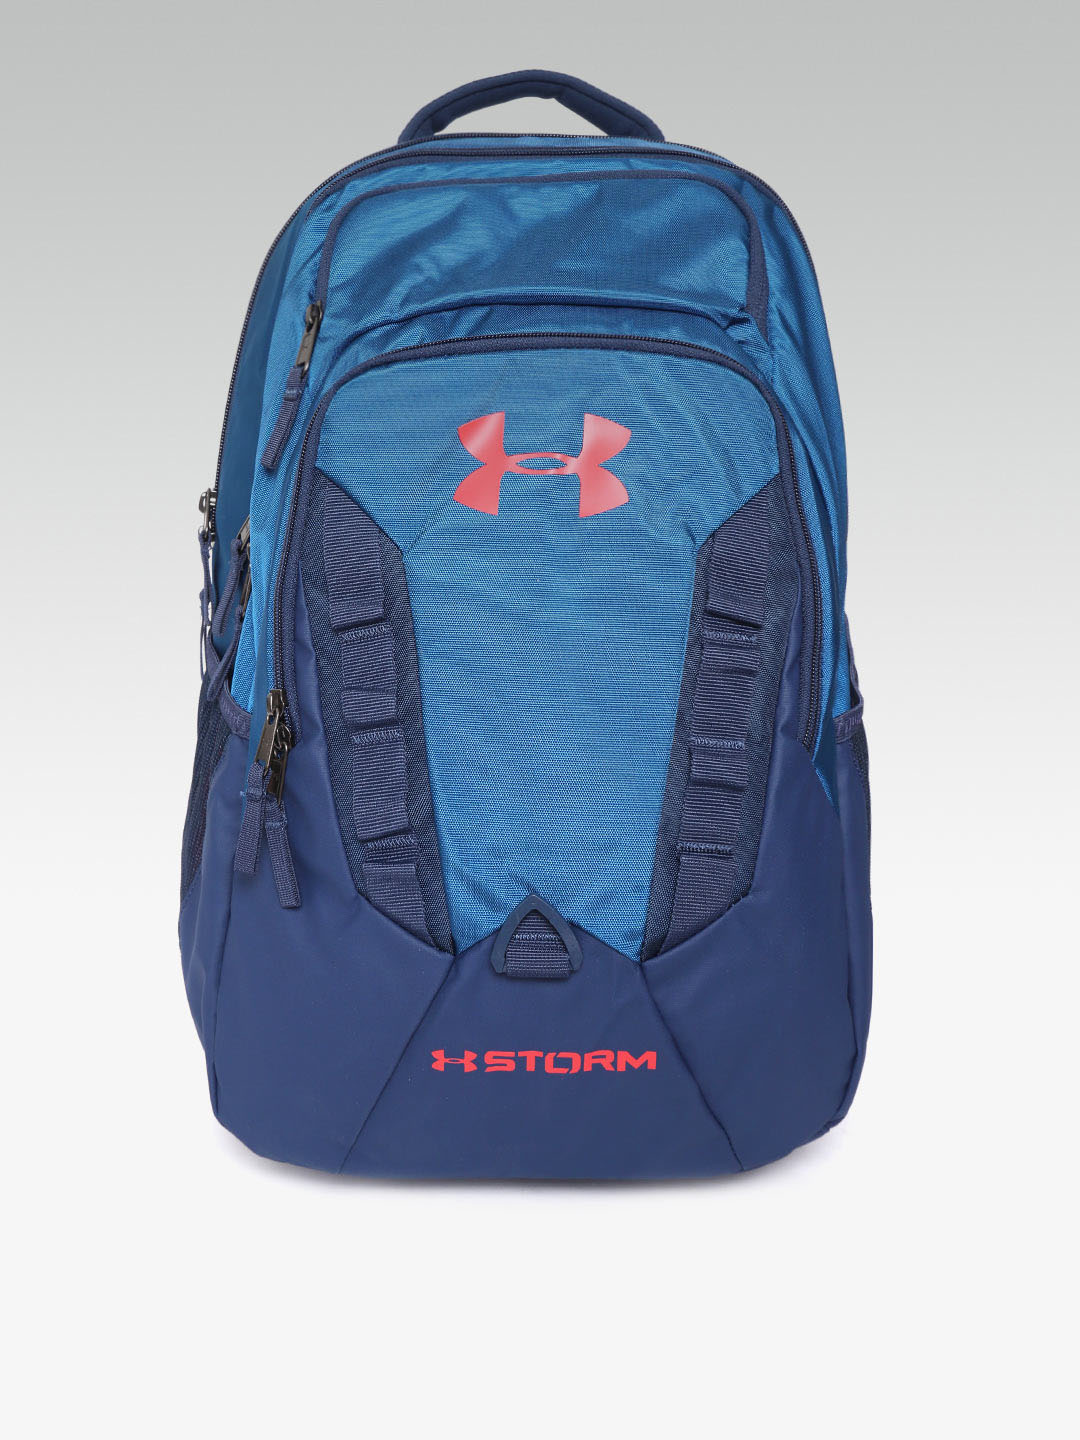 d376cb70d1bc Under Armour - Buy Under Armour online in India